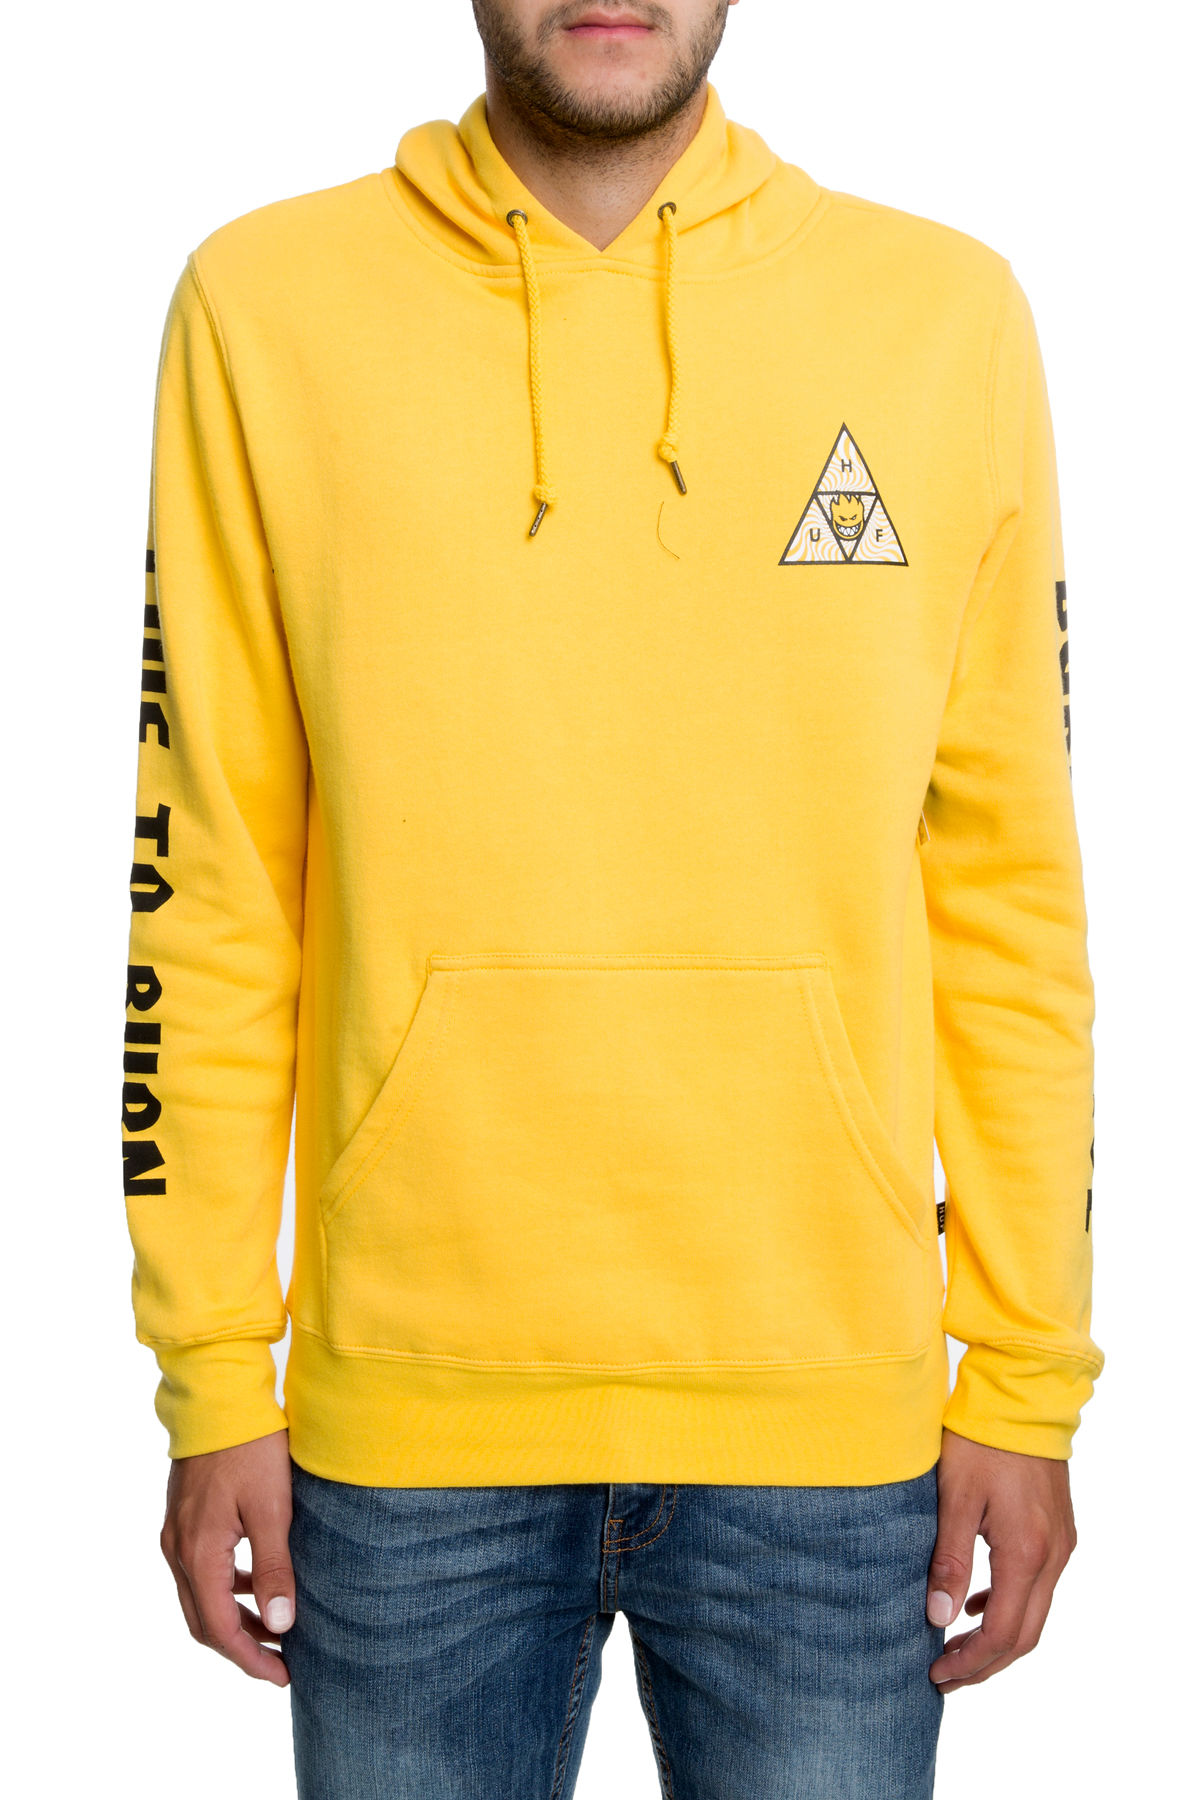 Image of The Spitfire Triangle Pullover Hoodie in Yellow